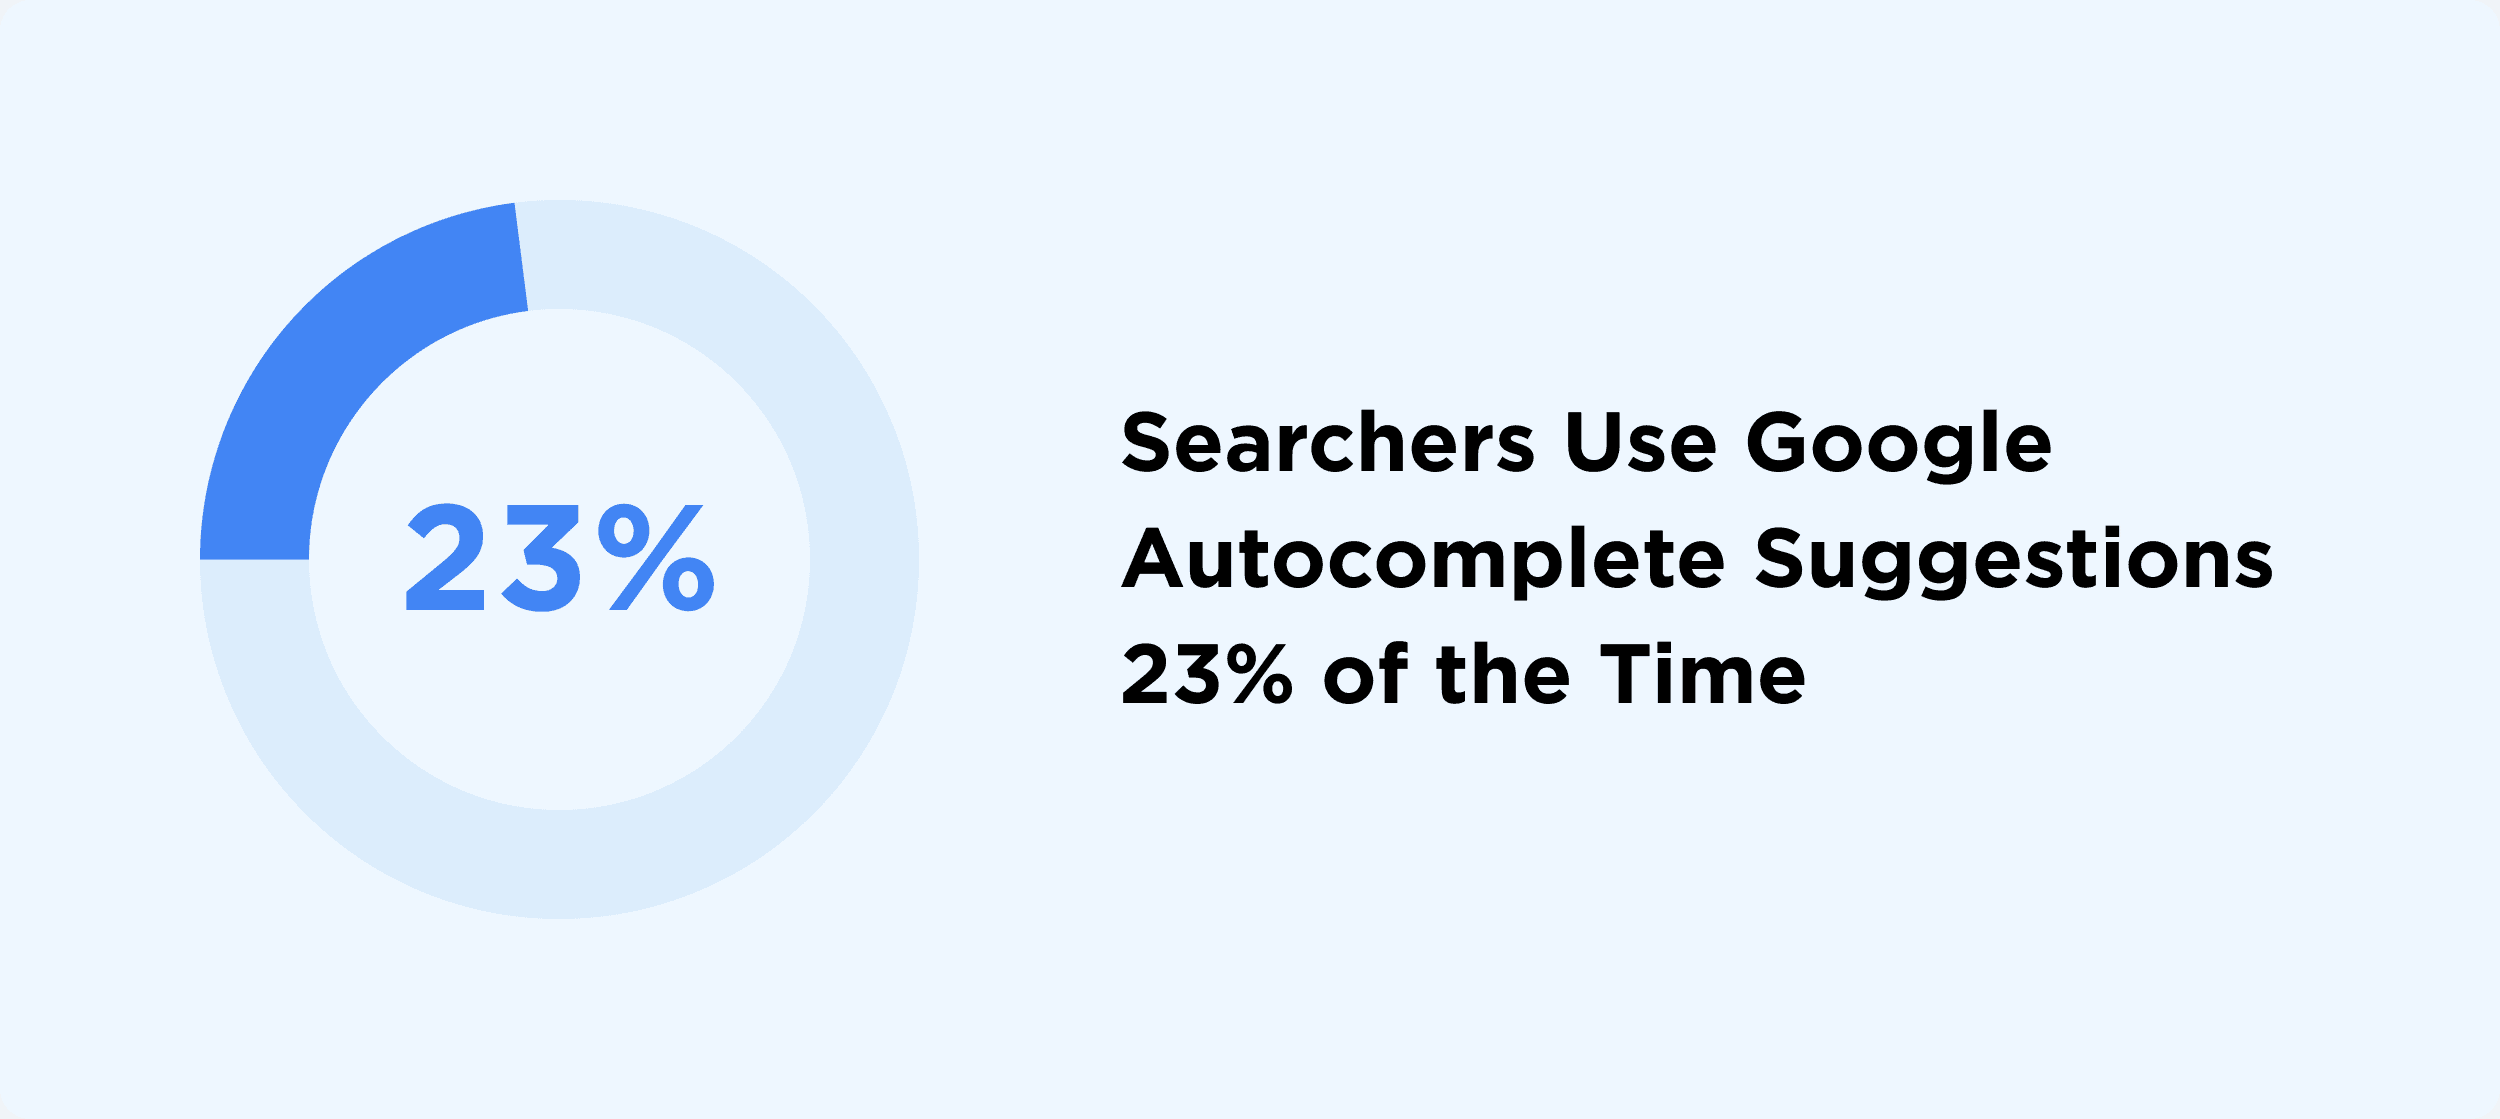 Searchers Use a Google Autocomplete Suggestion 23% of the Time